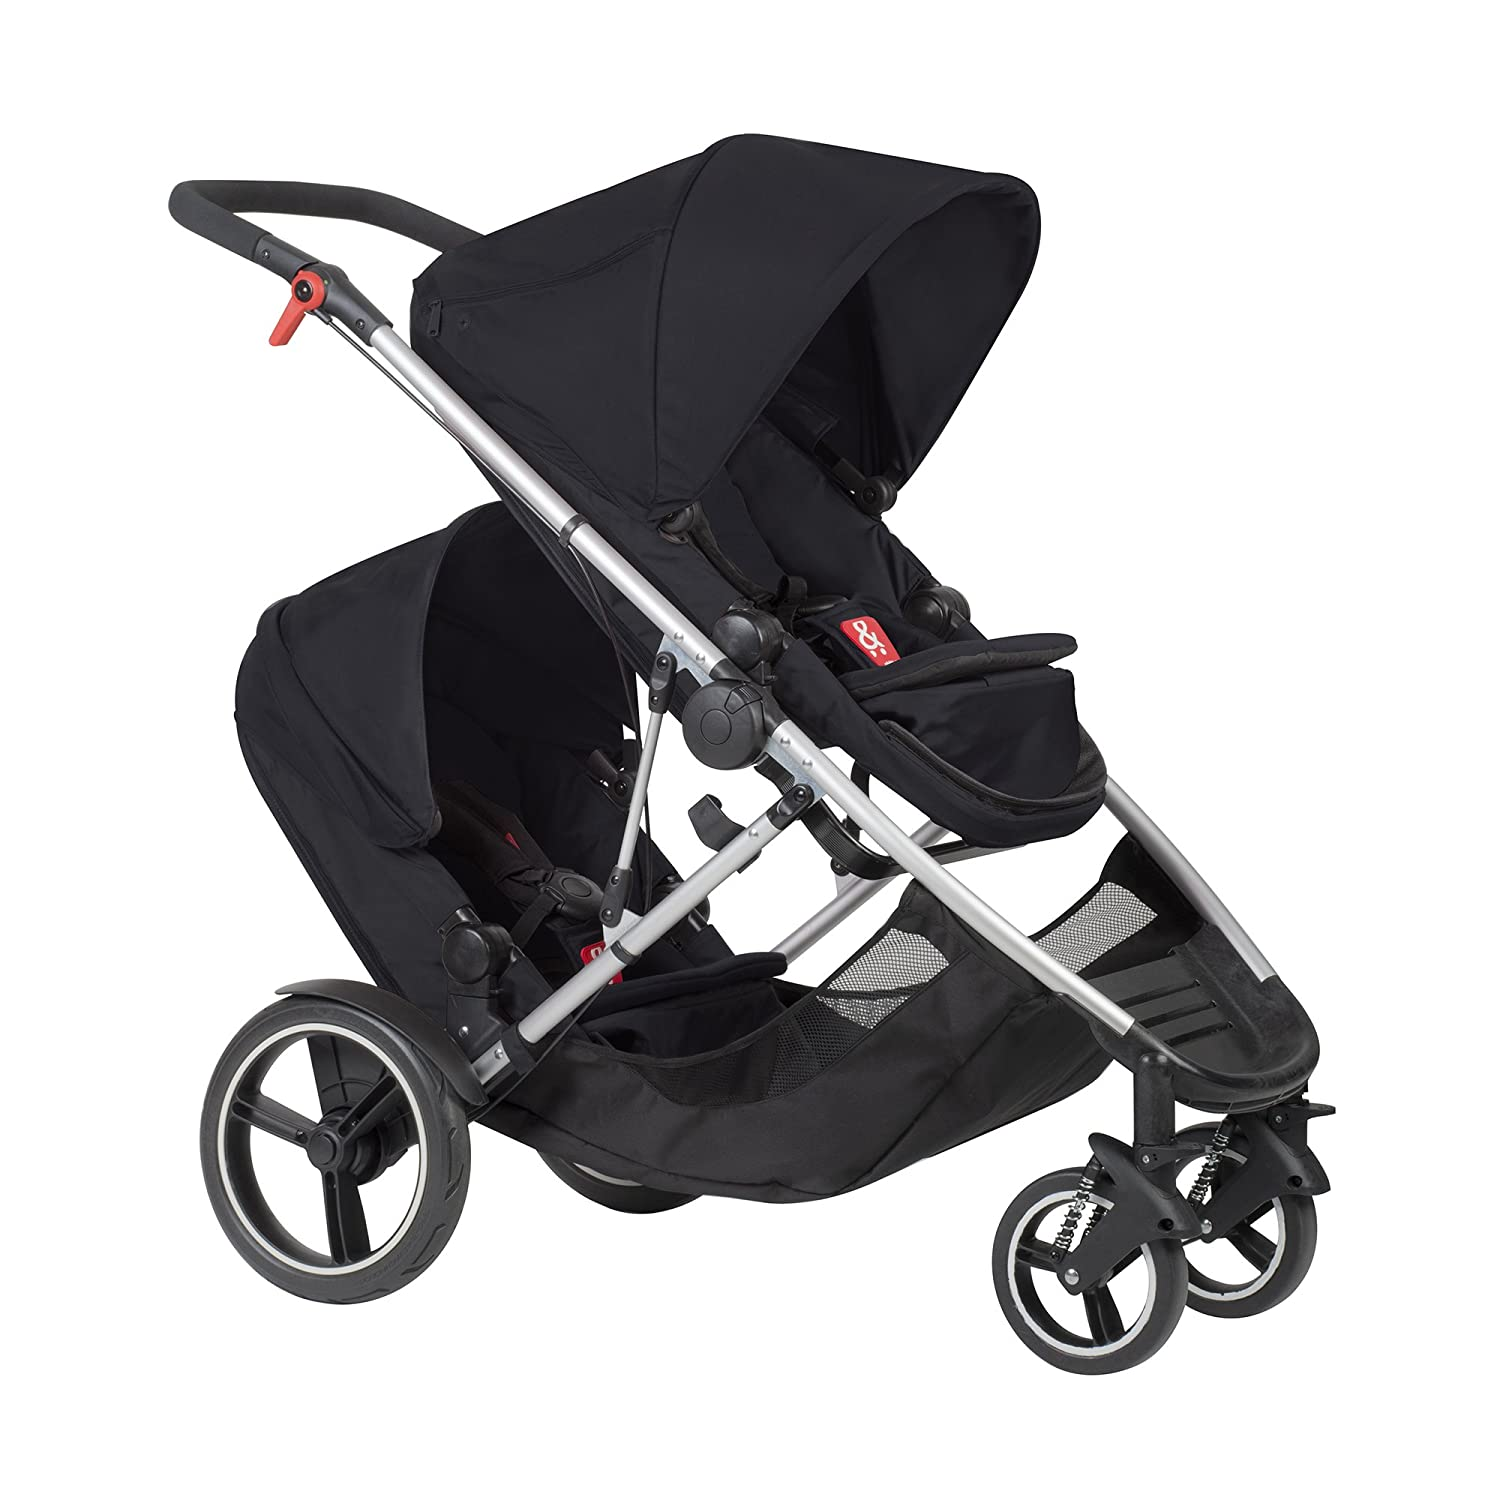 Amazon.com: Tandem - Strollers: Baby Products